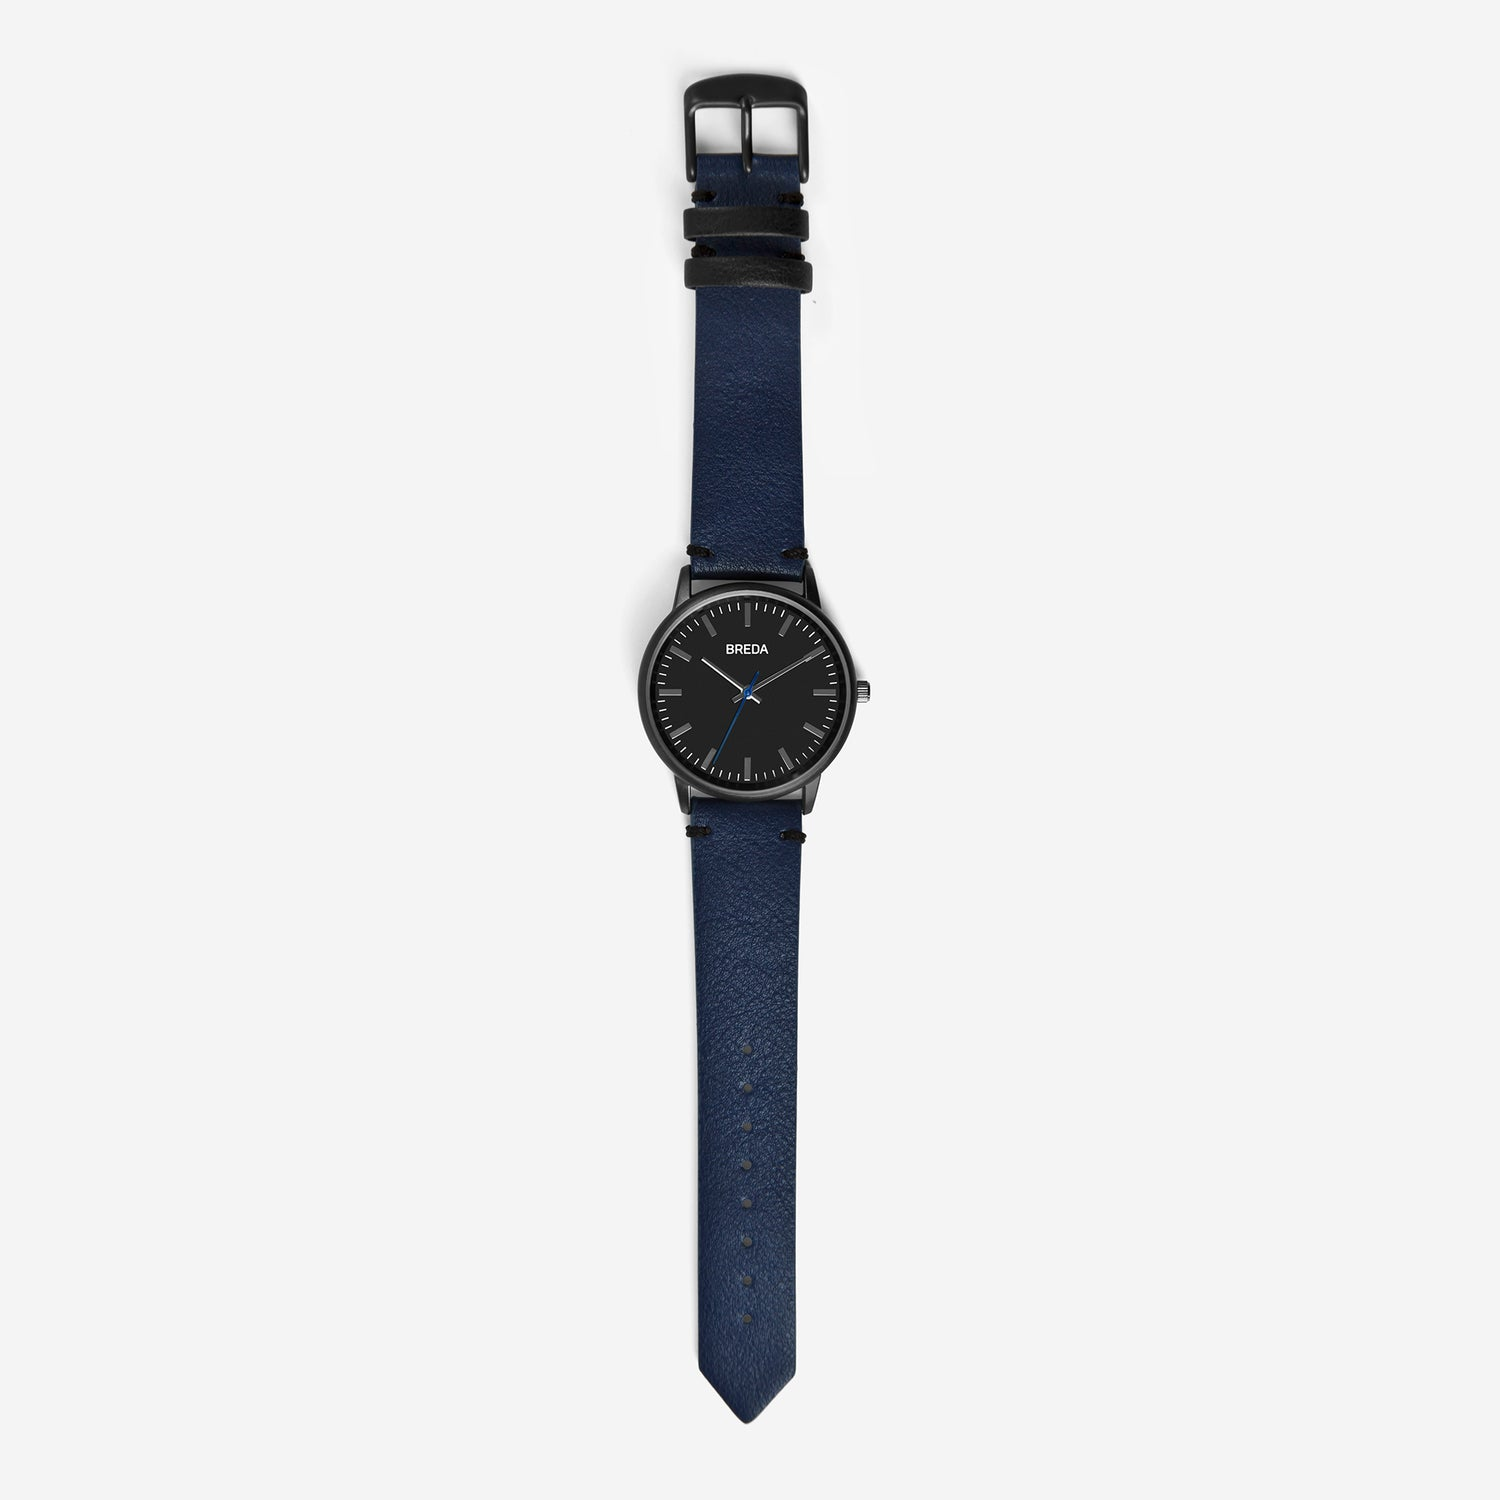 breda-zapf-1697g-gunmetal-navy-watch-long